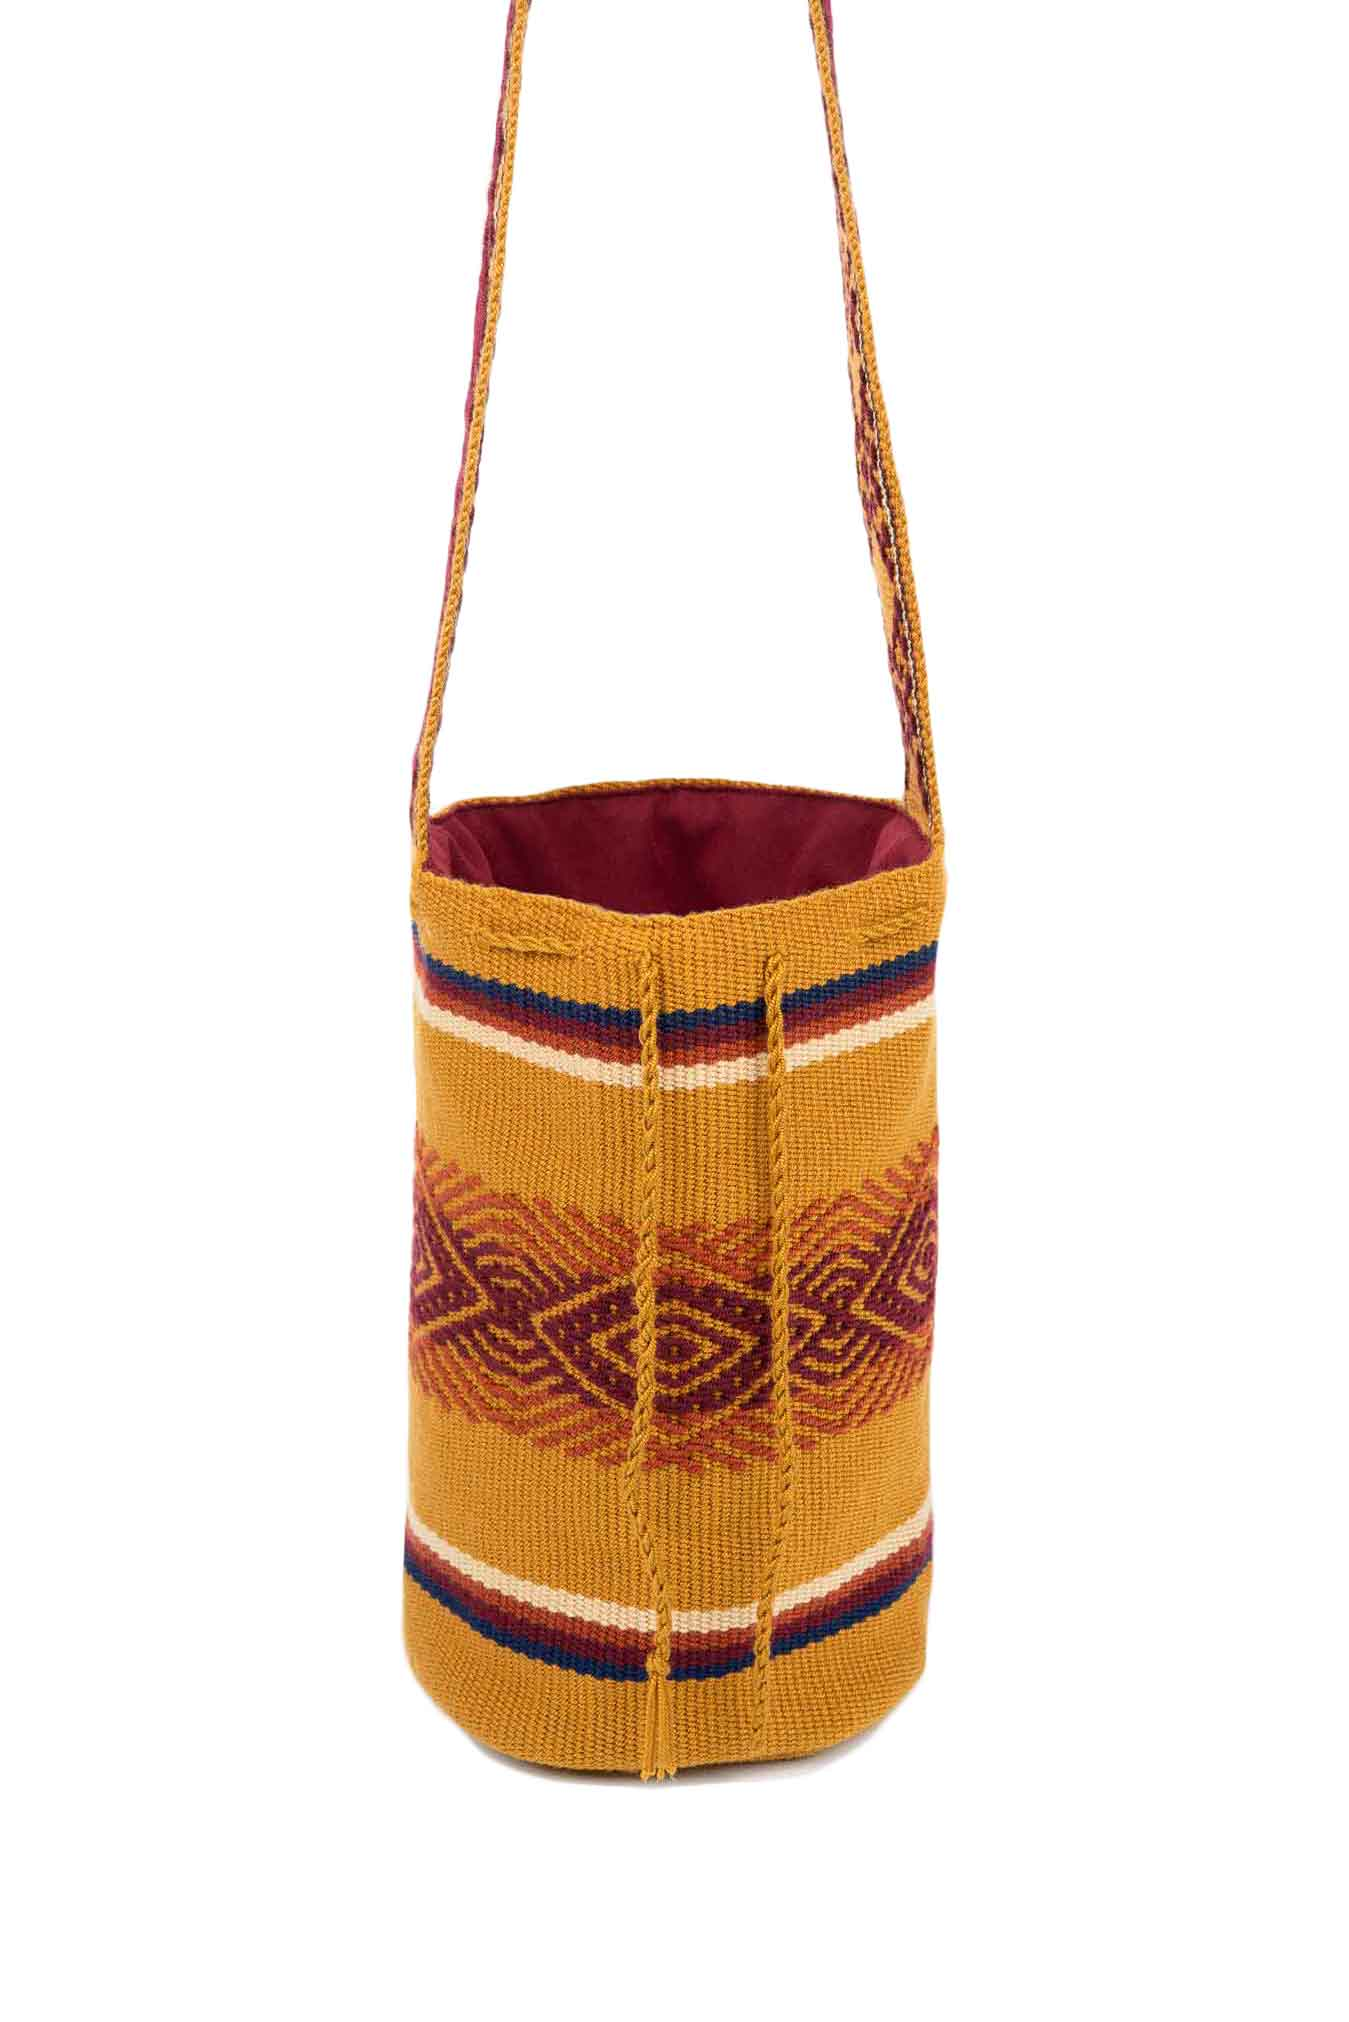 World Kamentsa Mochila Bag Mustard